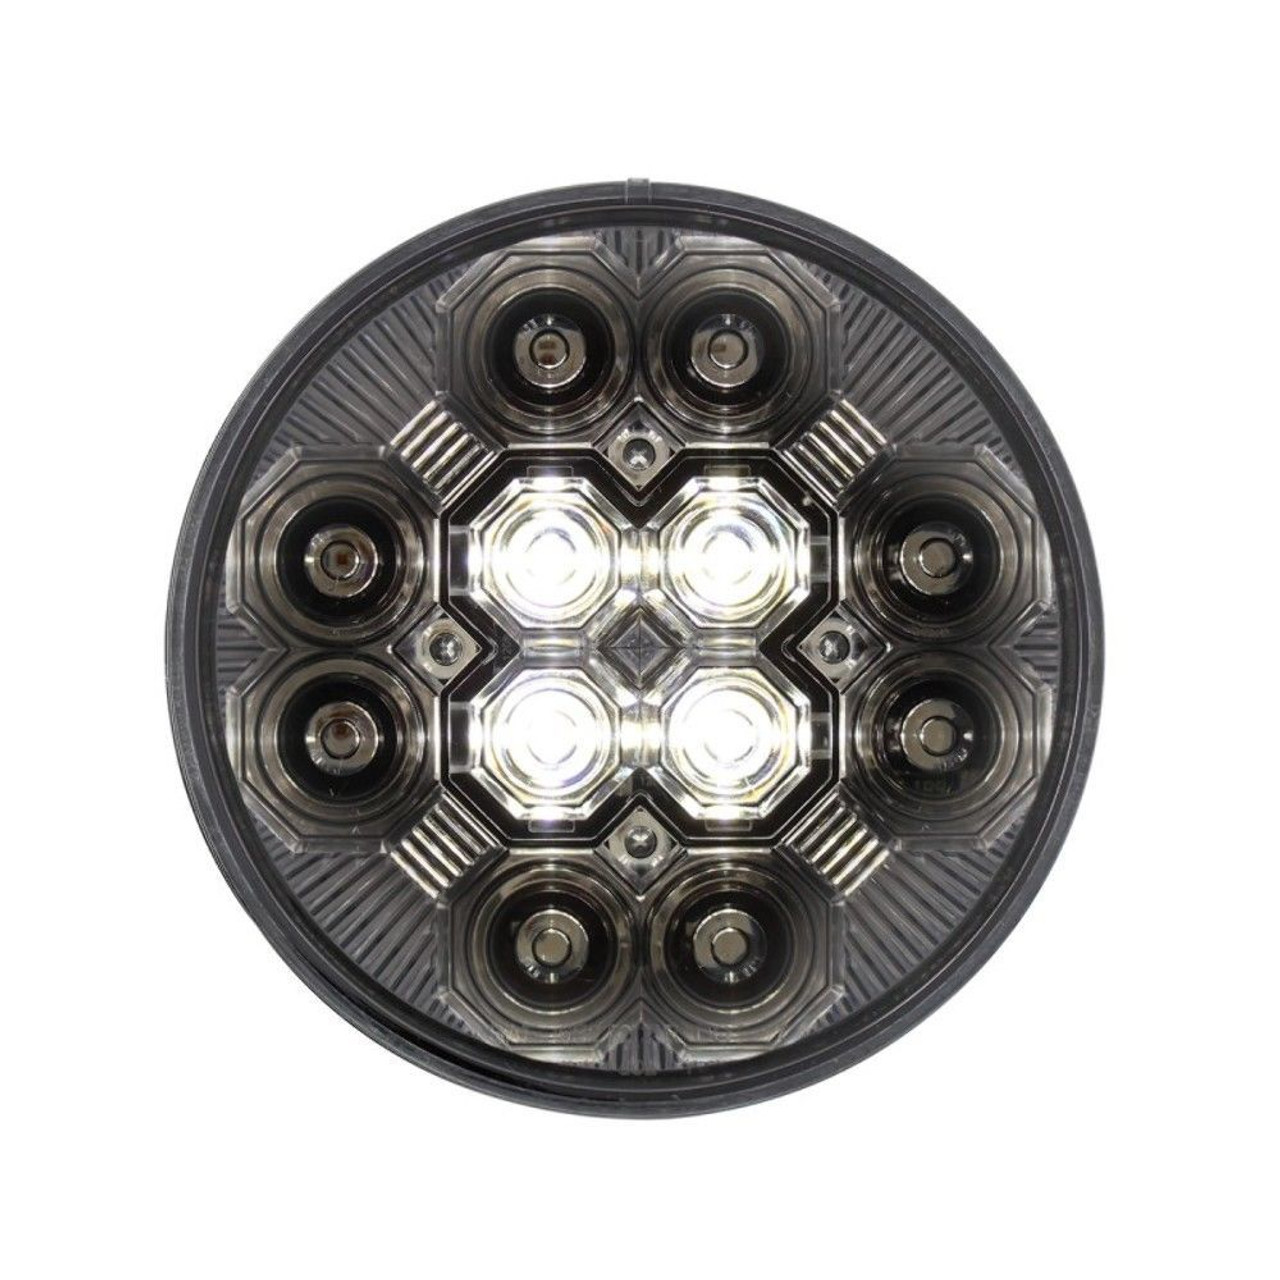 "4"" Round Combo Light with 12 LED S/T/T Light & 16 LED Back-Up Light -Clear Lens"